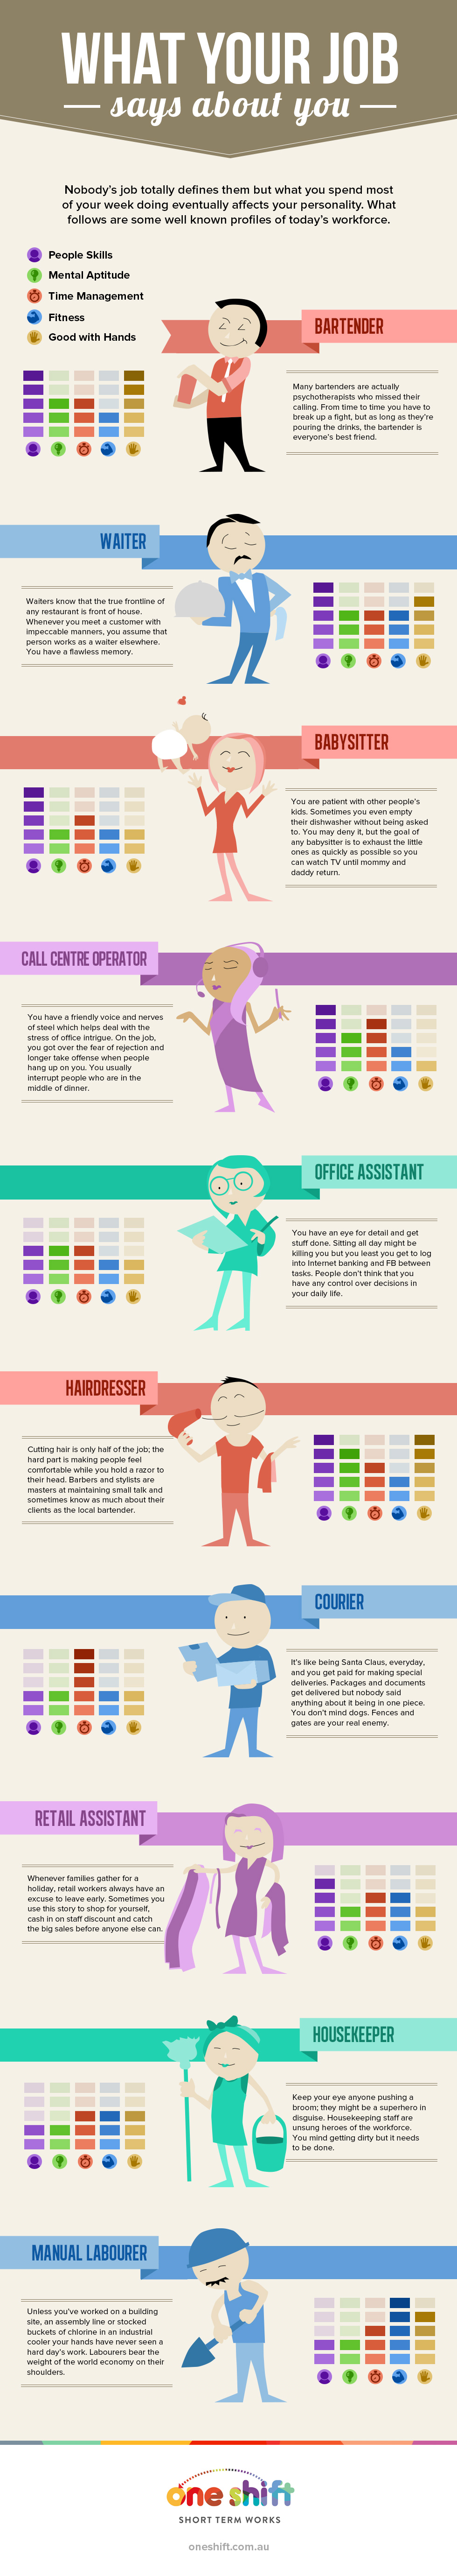 What Does Your Job Say About You Infographic Career Quiz Buzzfeed Career Quiz Social Media Infographic